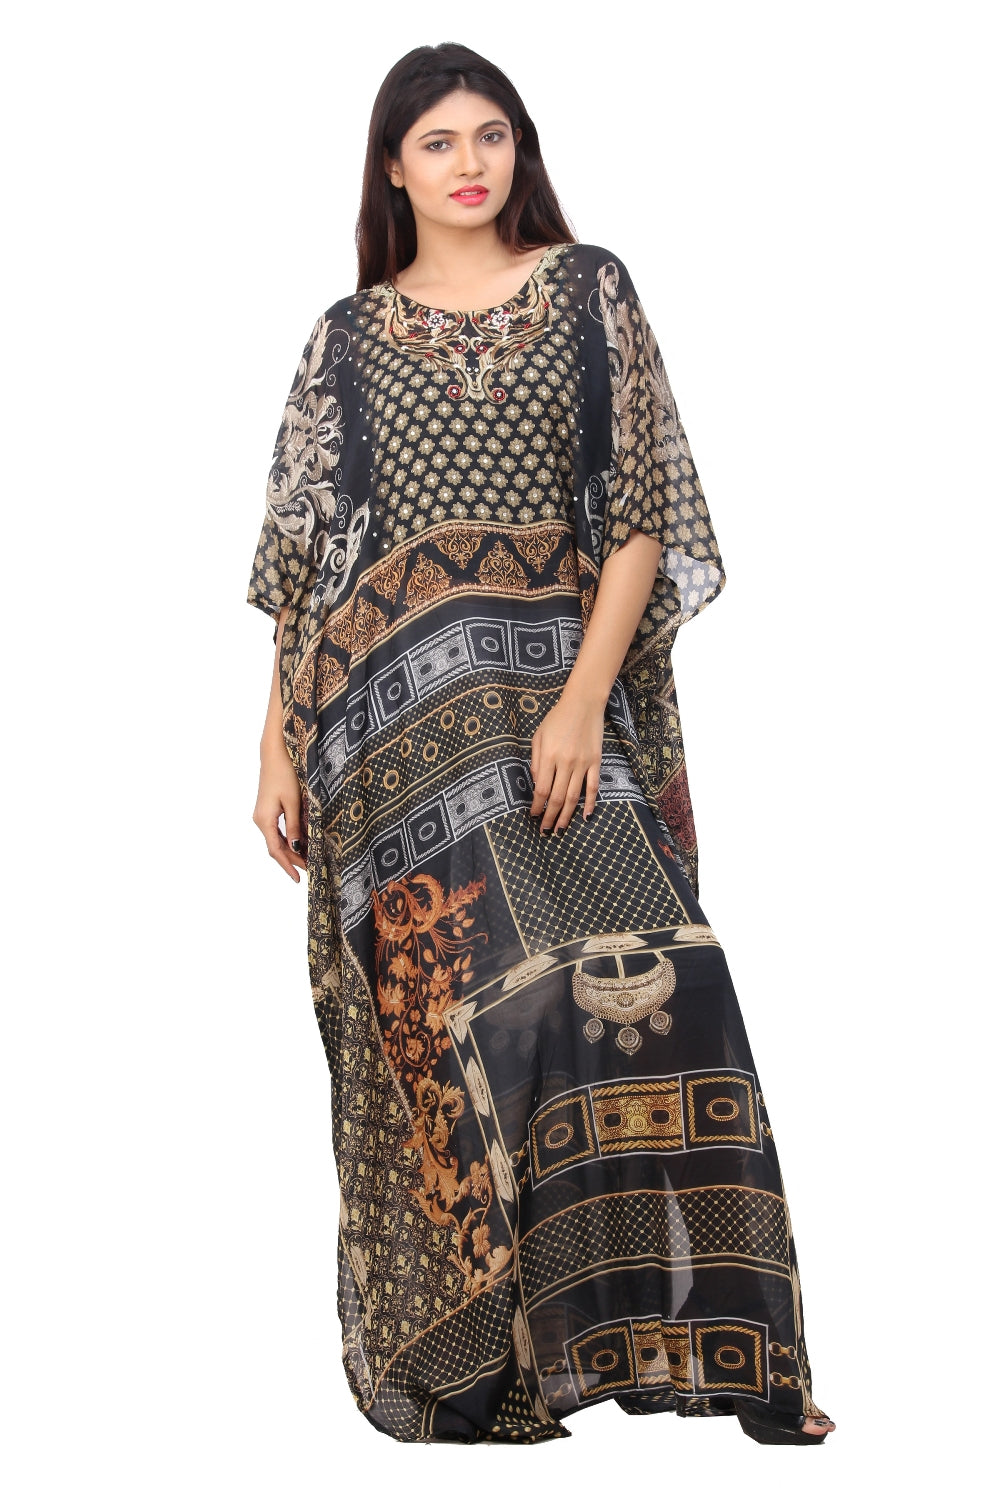 Lady in Black Abstract Print Silk Kaftan patterned Maxi long style for casual wear beach kaftan - Silk kaftan